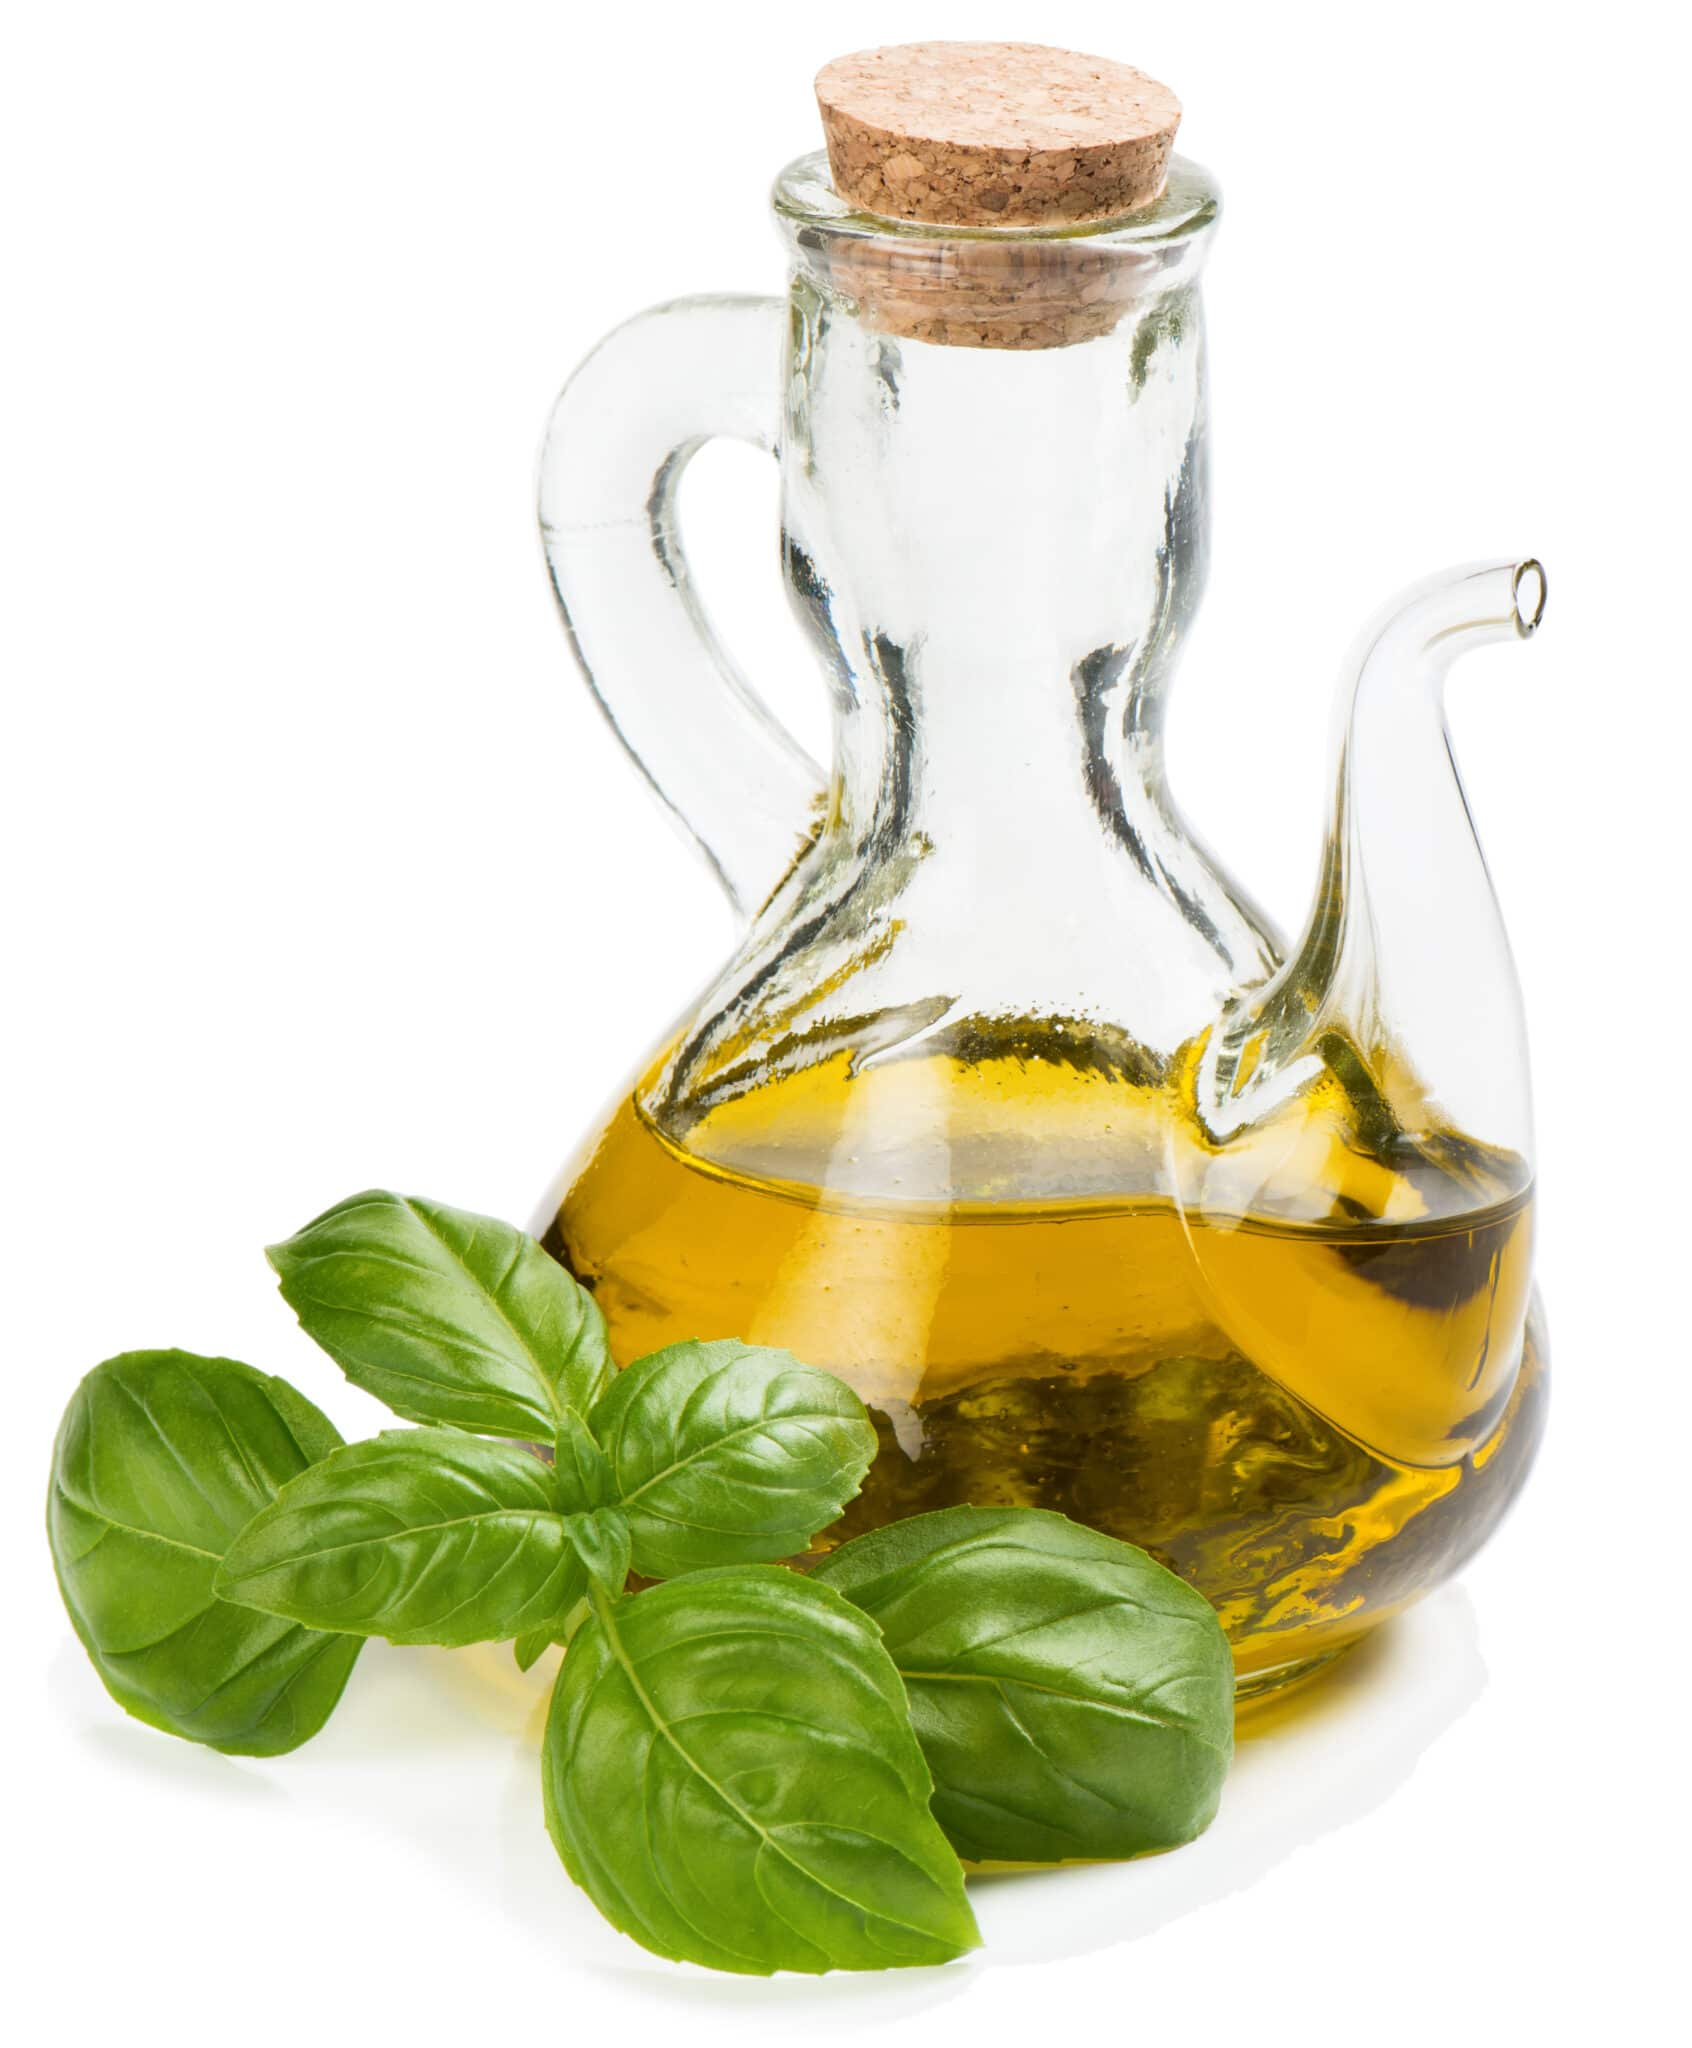 A jar of infused olive oil with a sprig of fresh basil against a bright white background.